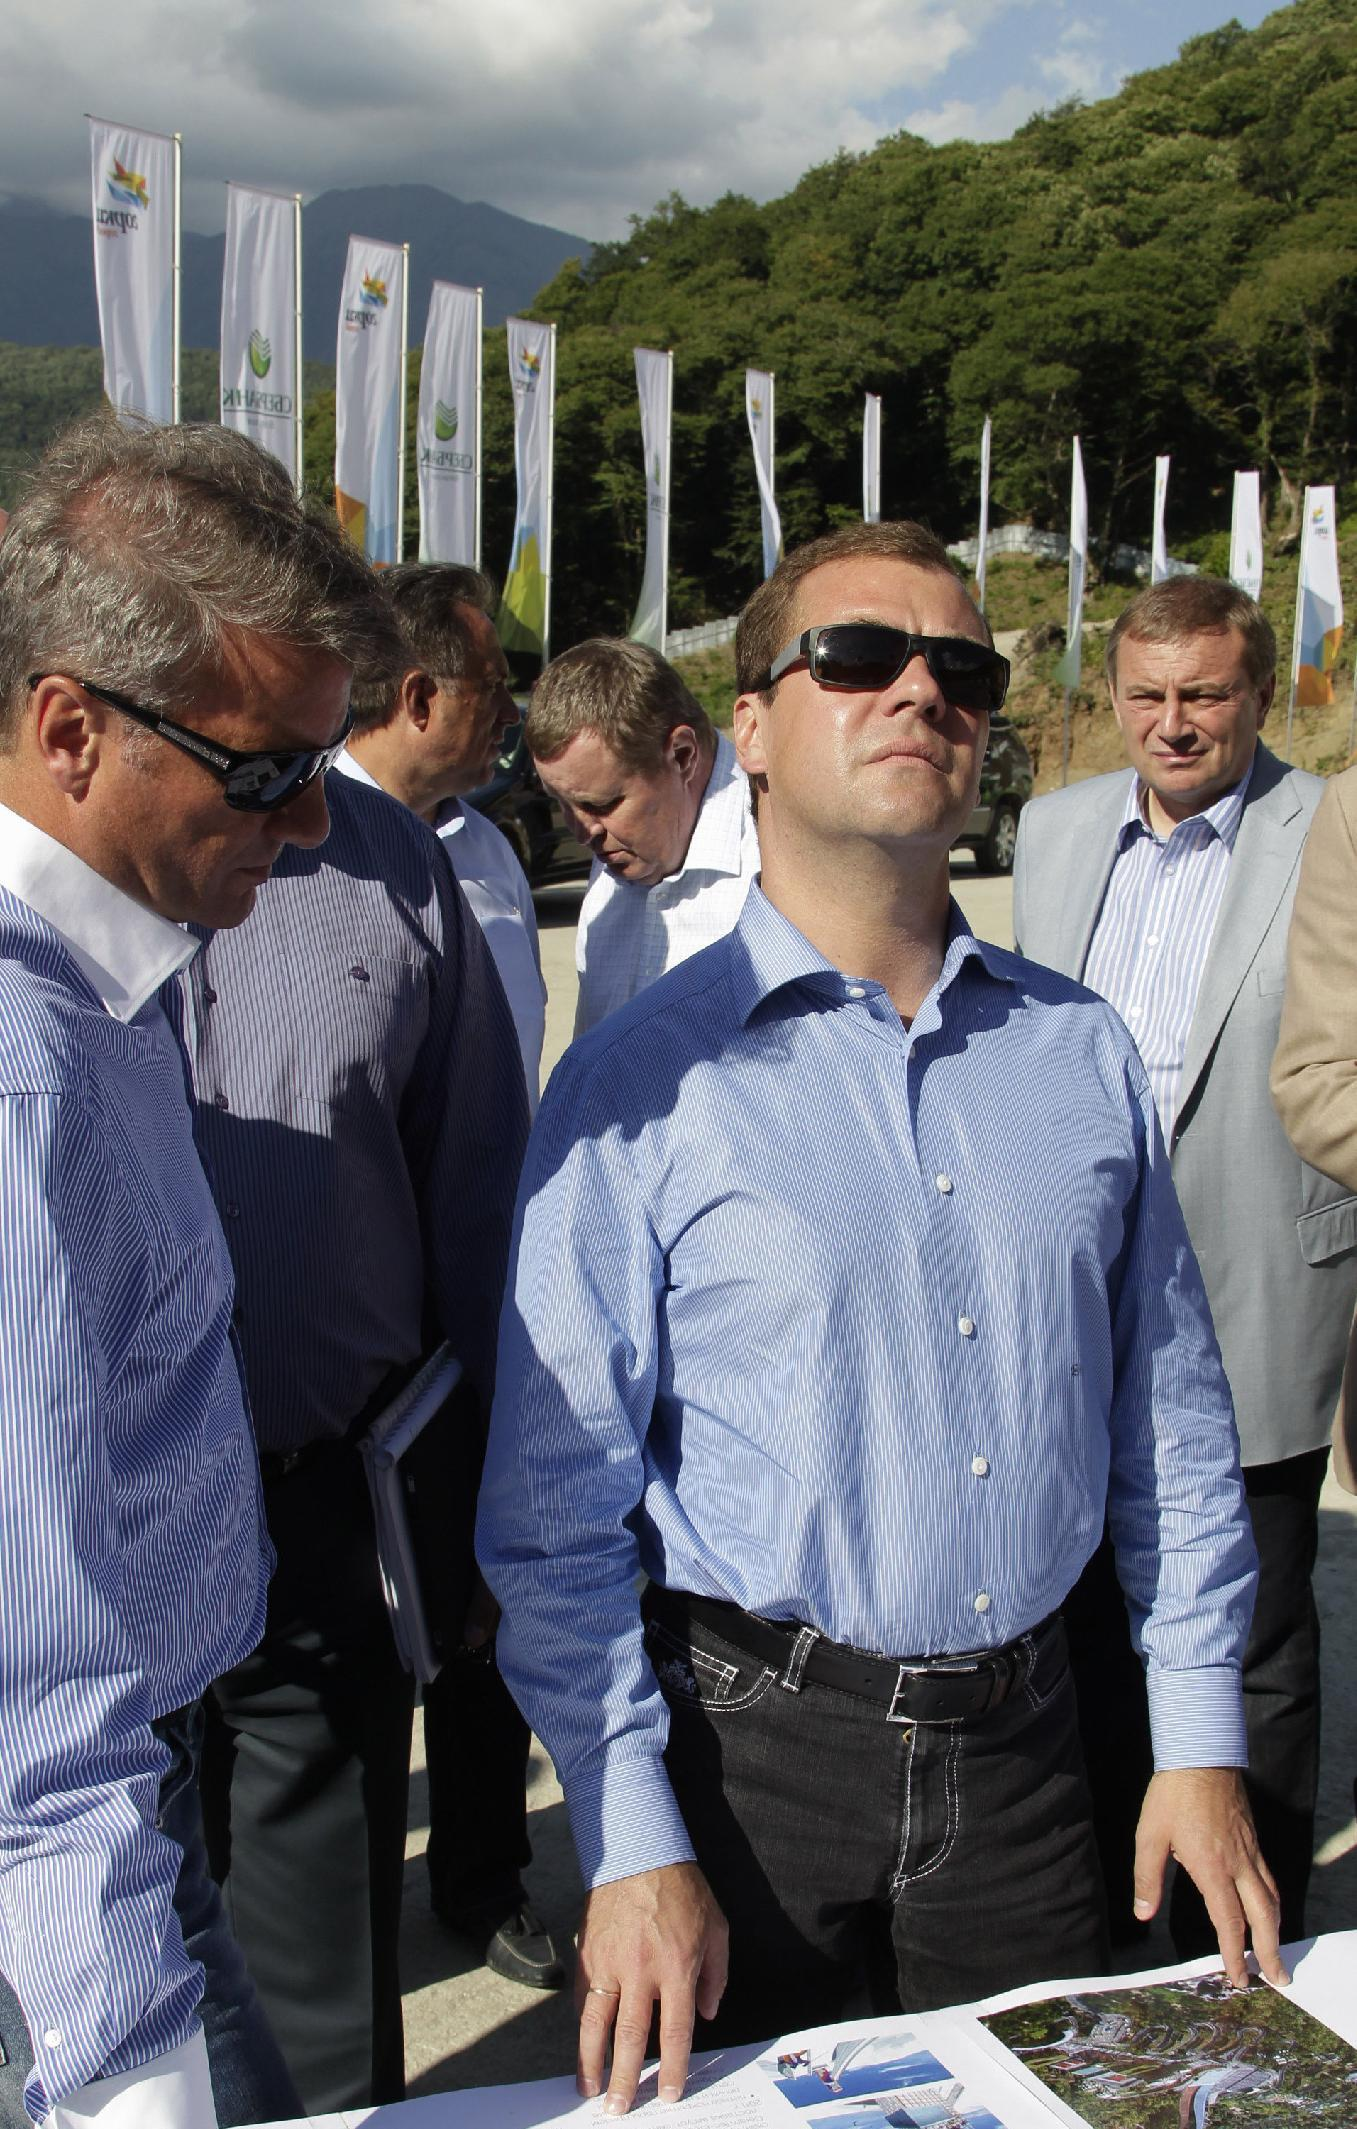 FILE - In this Tuesday, Aug. 23, 2011 file photo, then, Russian President Dmitry Medvedev and Sberbank President German Gref, left, visit a construction site of a skiing facility for the 2014 Sochi Winter Olympics, near the Black Sea resort of Sochi, southern Russia. The names of Russia's business powerhouses have taken over the mountains of Sochi, now the home of Potanin's slope, Gazprom's gondola lift and Sberbank's ski jump. These names, used by local residents and an army of construction workers, leave no doubt about who is paying for next year's Winter Games. (AP Photo/RIA Novosti, Mikhial Klimentyev, Presidential Press Service, File)